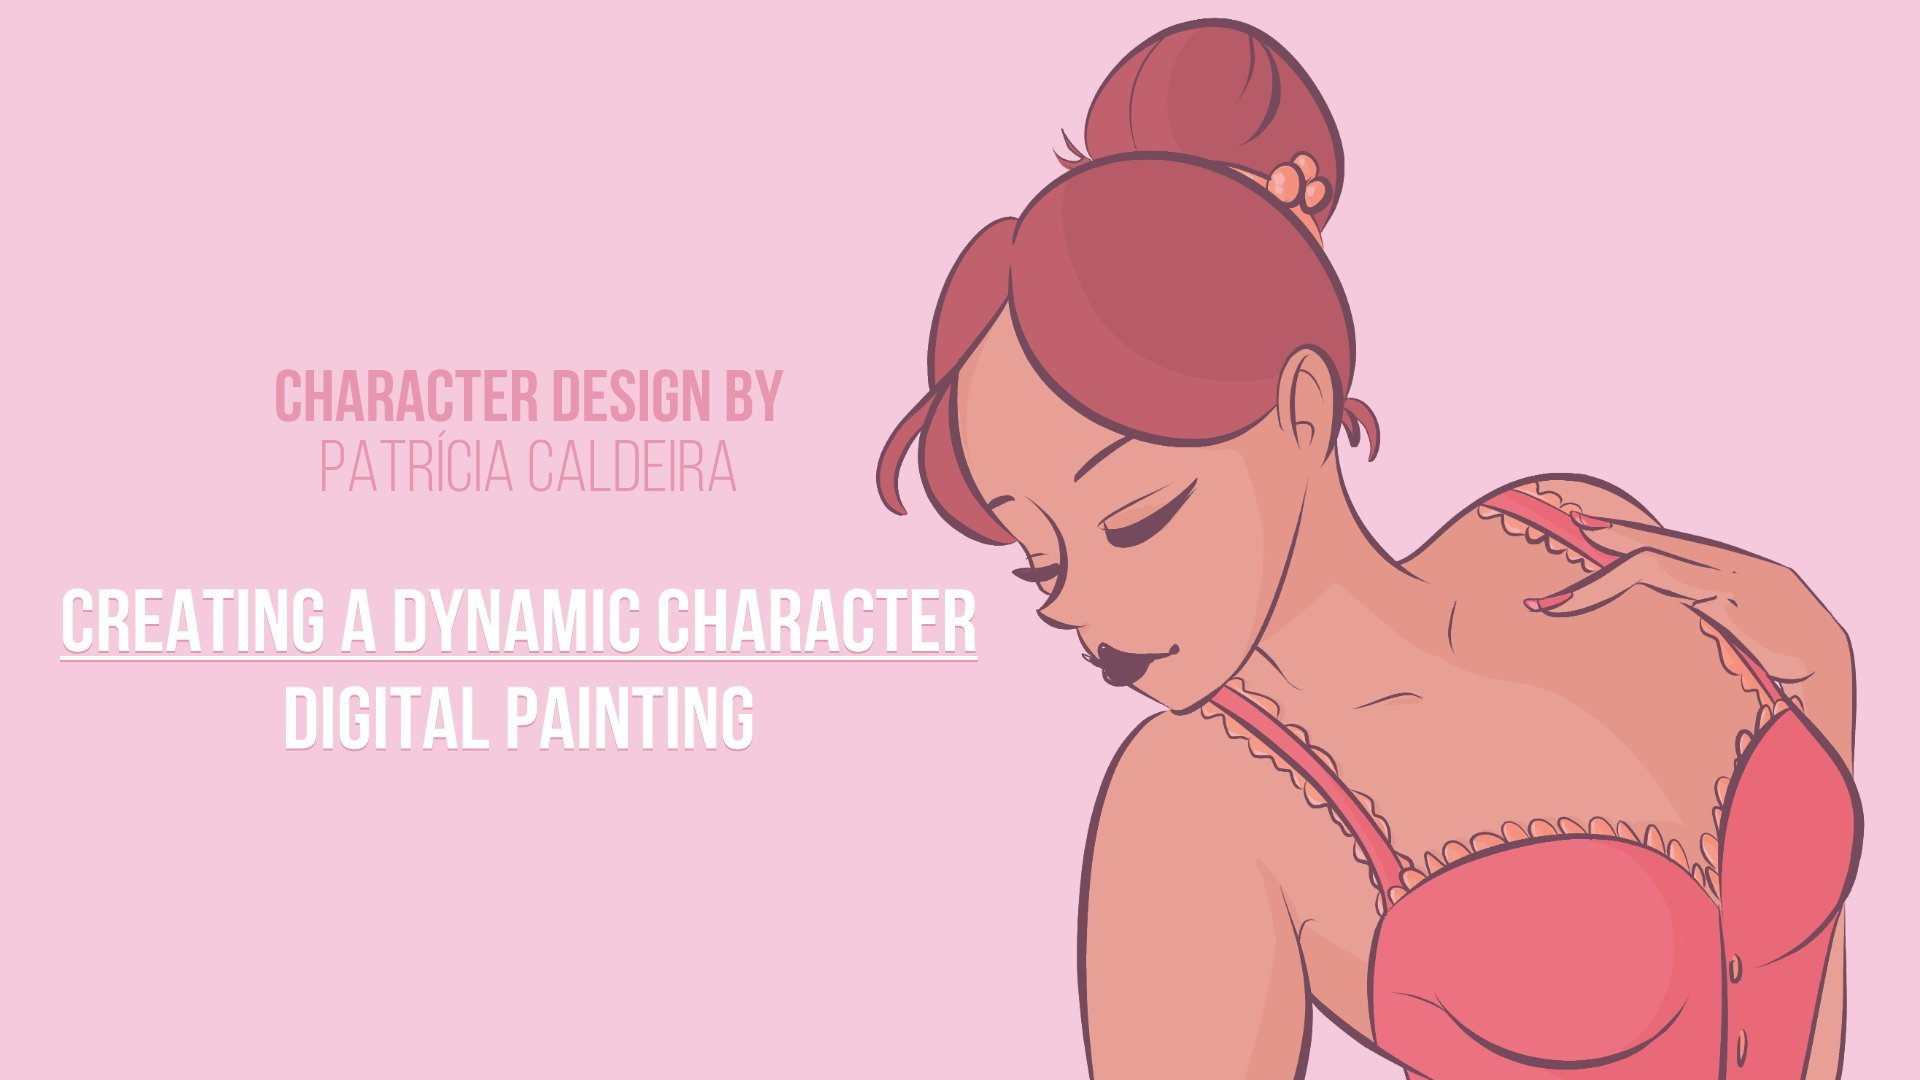 Dynamic Character Design Definition : Creating a dynamic character digital painting patricia